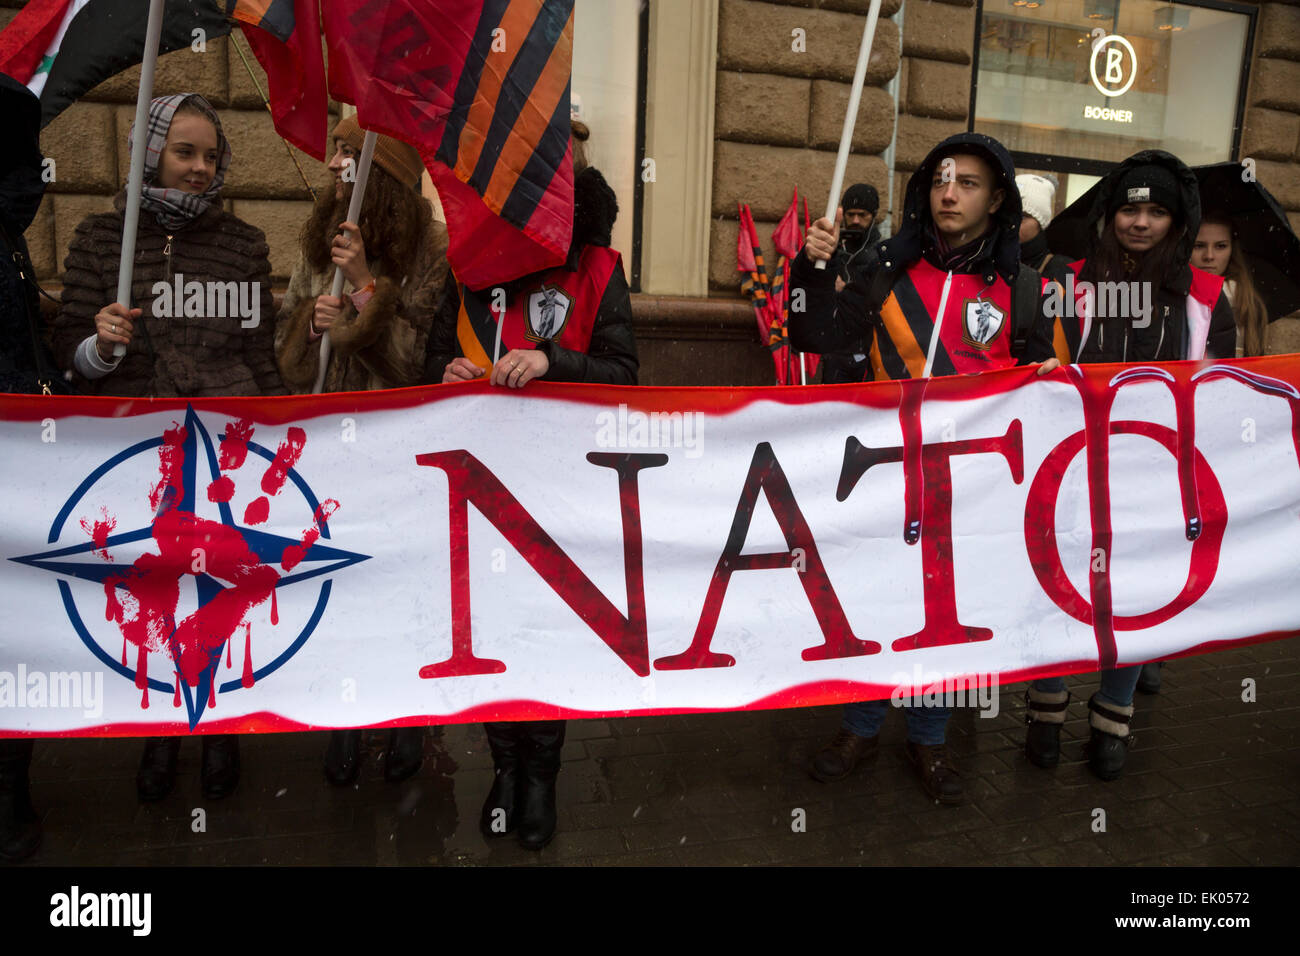 Moscow, Russia. 03 Apr, 2015. Antimaidan movement activists stage a 'Stop NATO' flashmob across the street - Stock Image